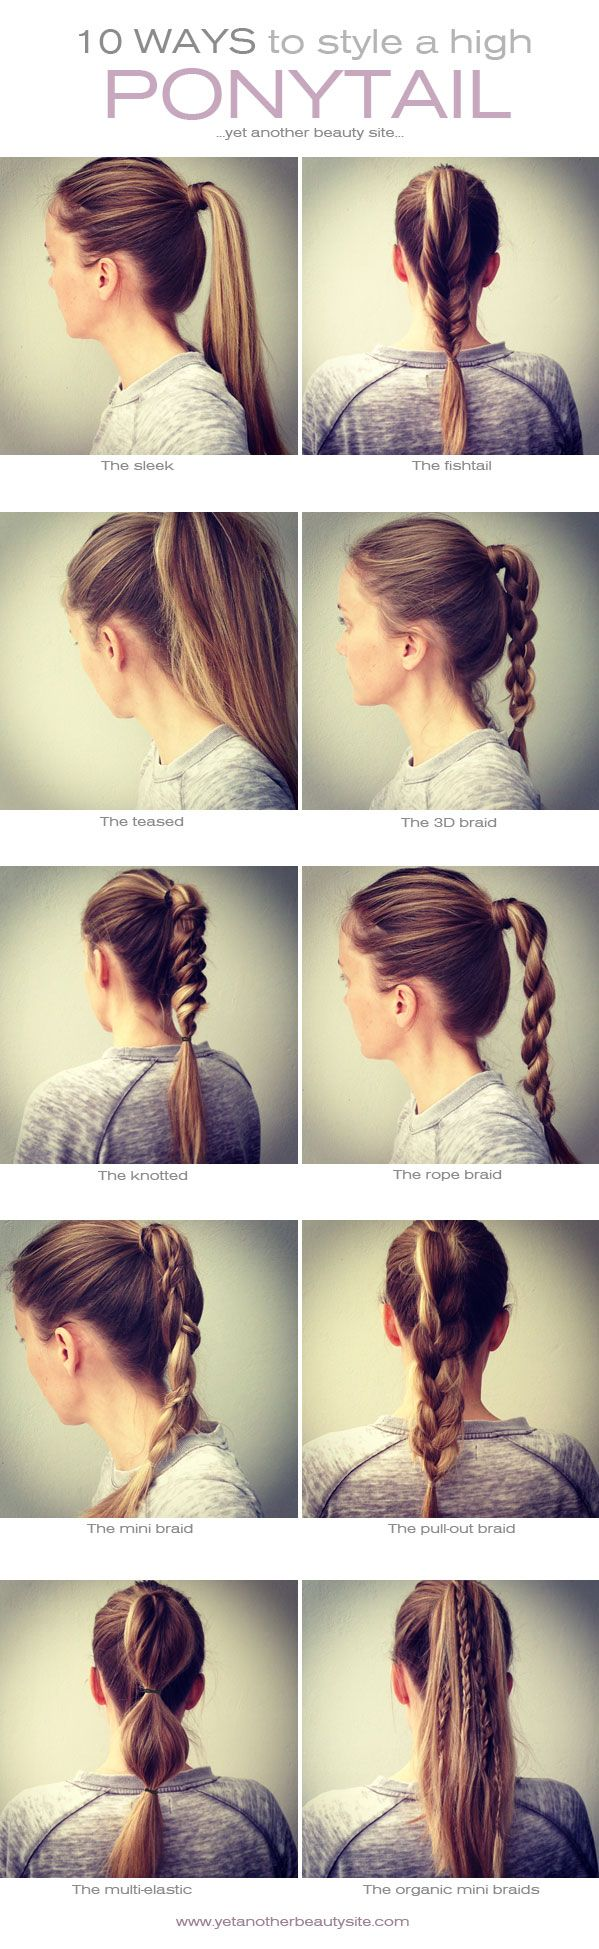 Yet another beauty sitehair hair pinterest ponytail high